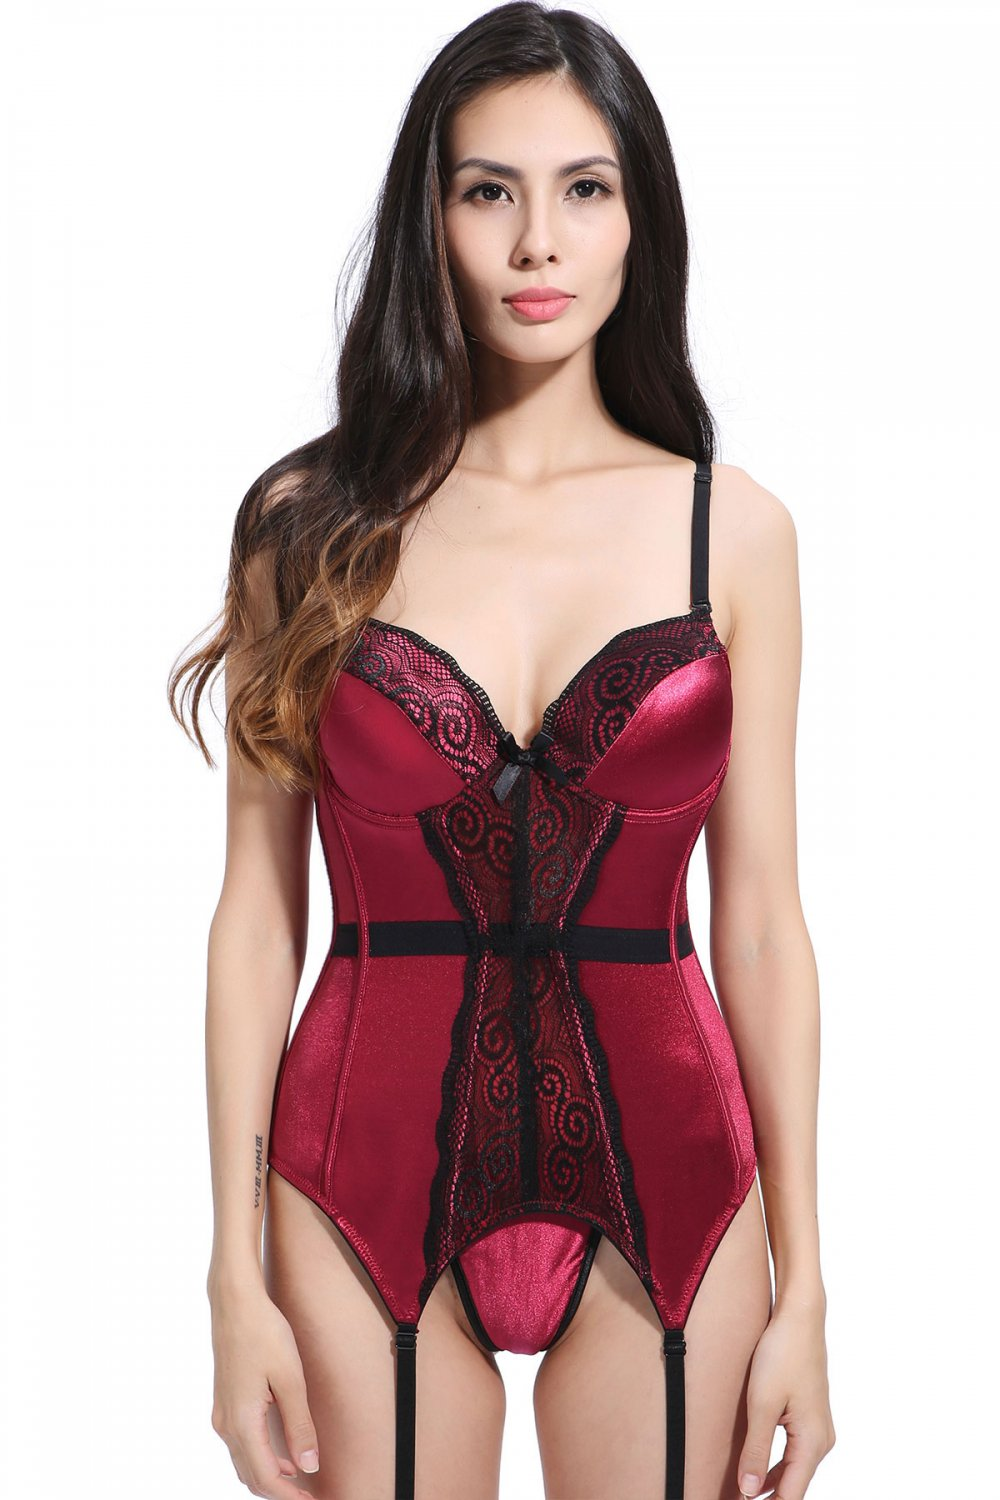 Red Satin Underwire Sexy Corset With Lace  S-XXL Size W356017